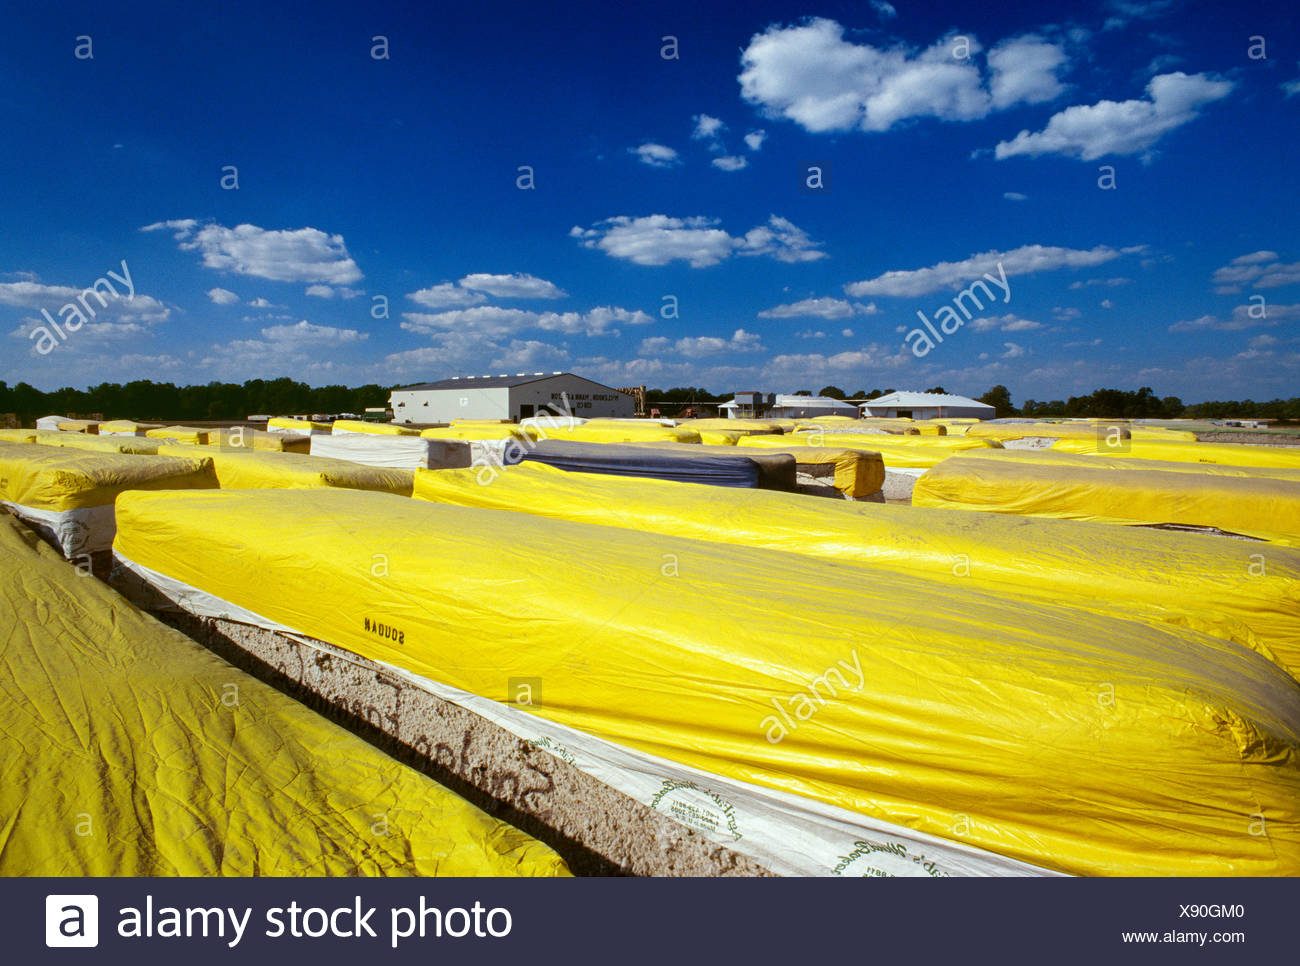 Agriculture - Cotton modules with yellow tarps await processing at a cotton gin / Marianna, Arkansas, USA. - Stock Image